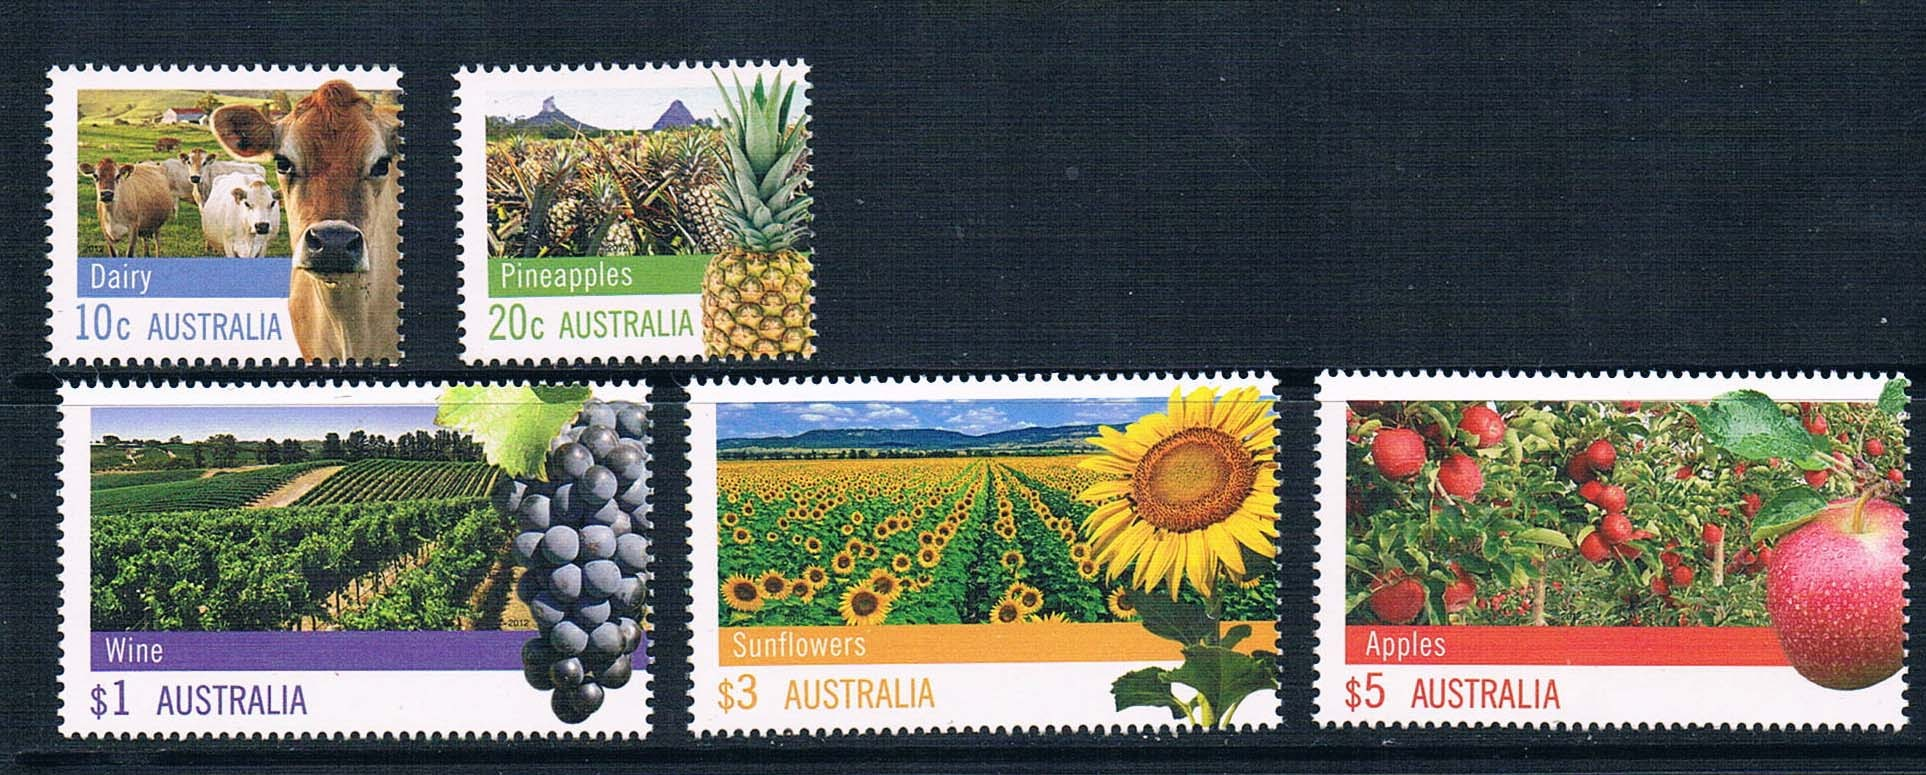 K0896 Australia 2012 agriculture and animal husbandry products grapes cattle sunflower stamp 5 new 0613 pastoralism and agriculture pennar basin india